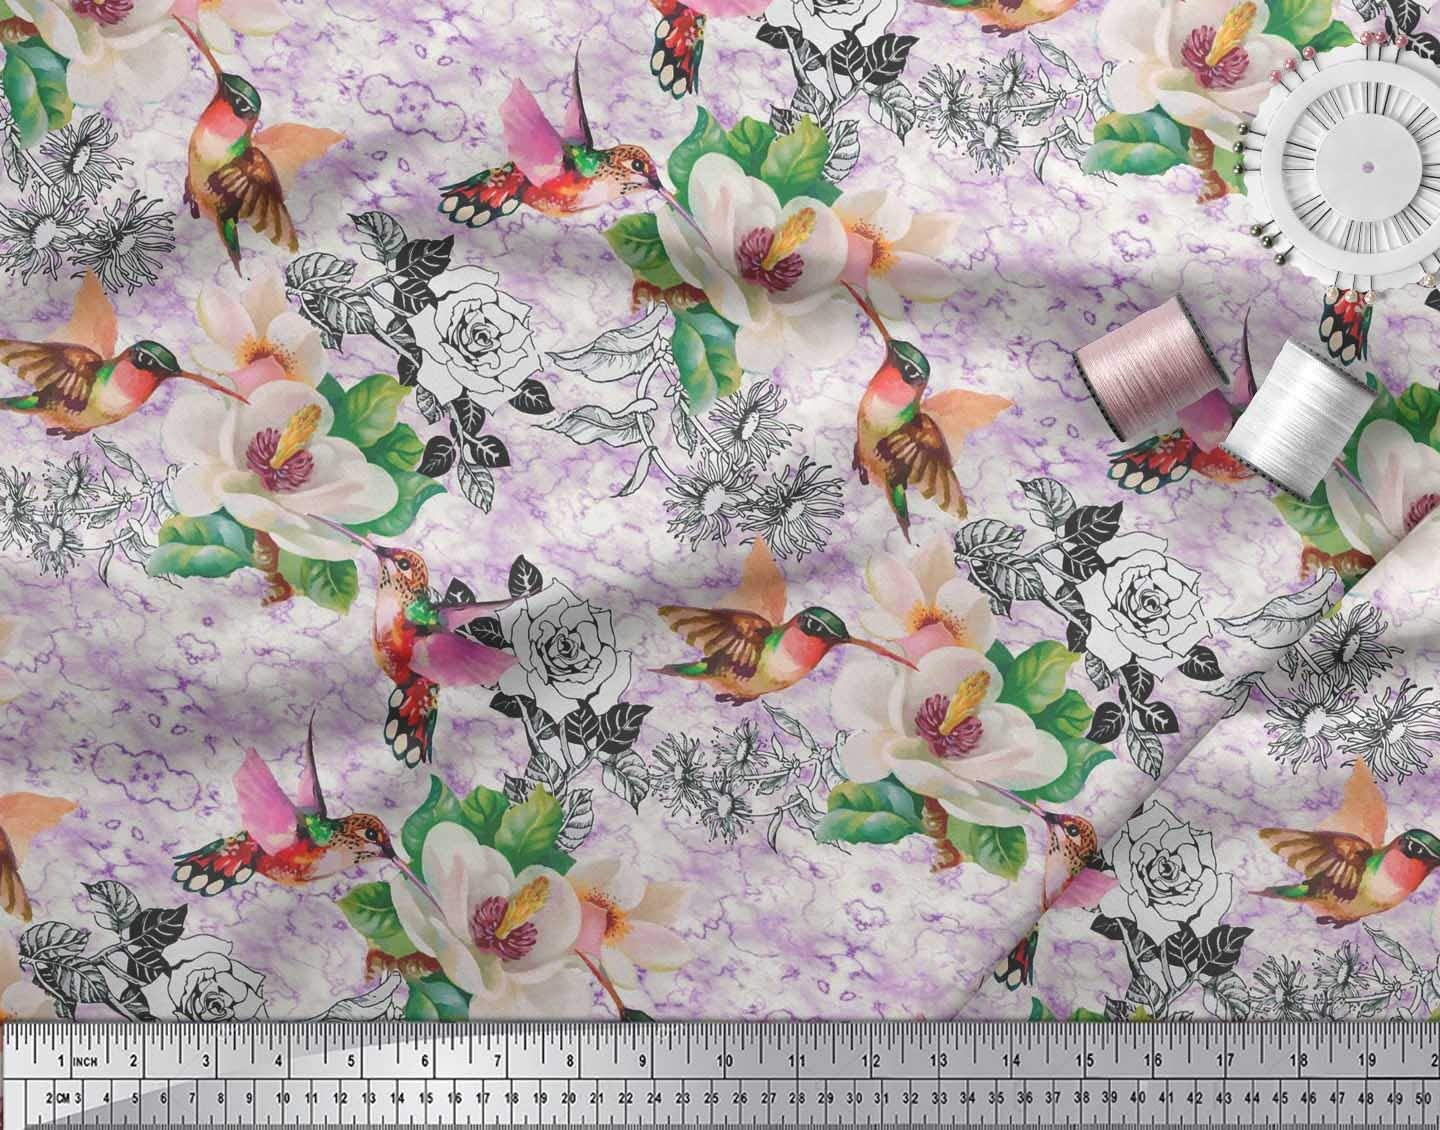 Soimoi Gray Cotton Cambric Fabric Leaves,Hummingbird /& Magnolia Flower Printed Craft Fabric BTY 42 Inch Wide